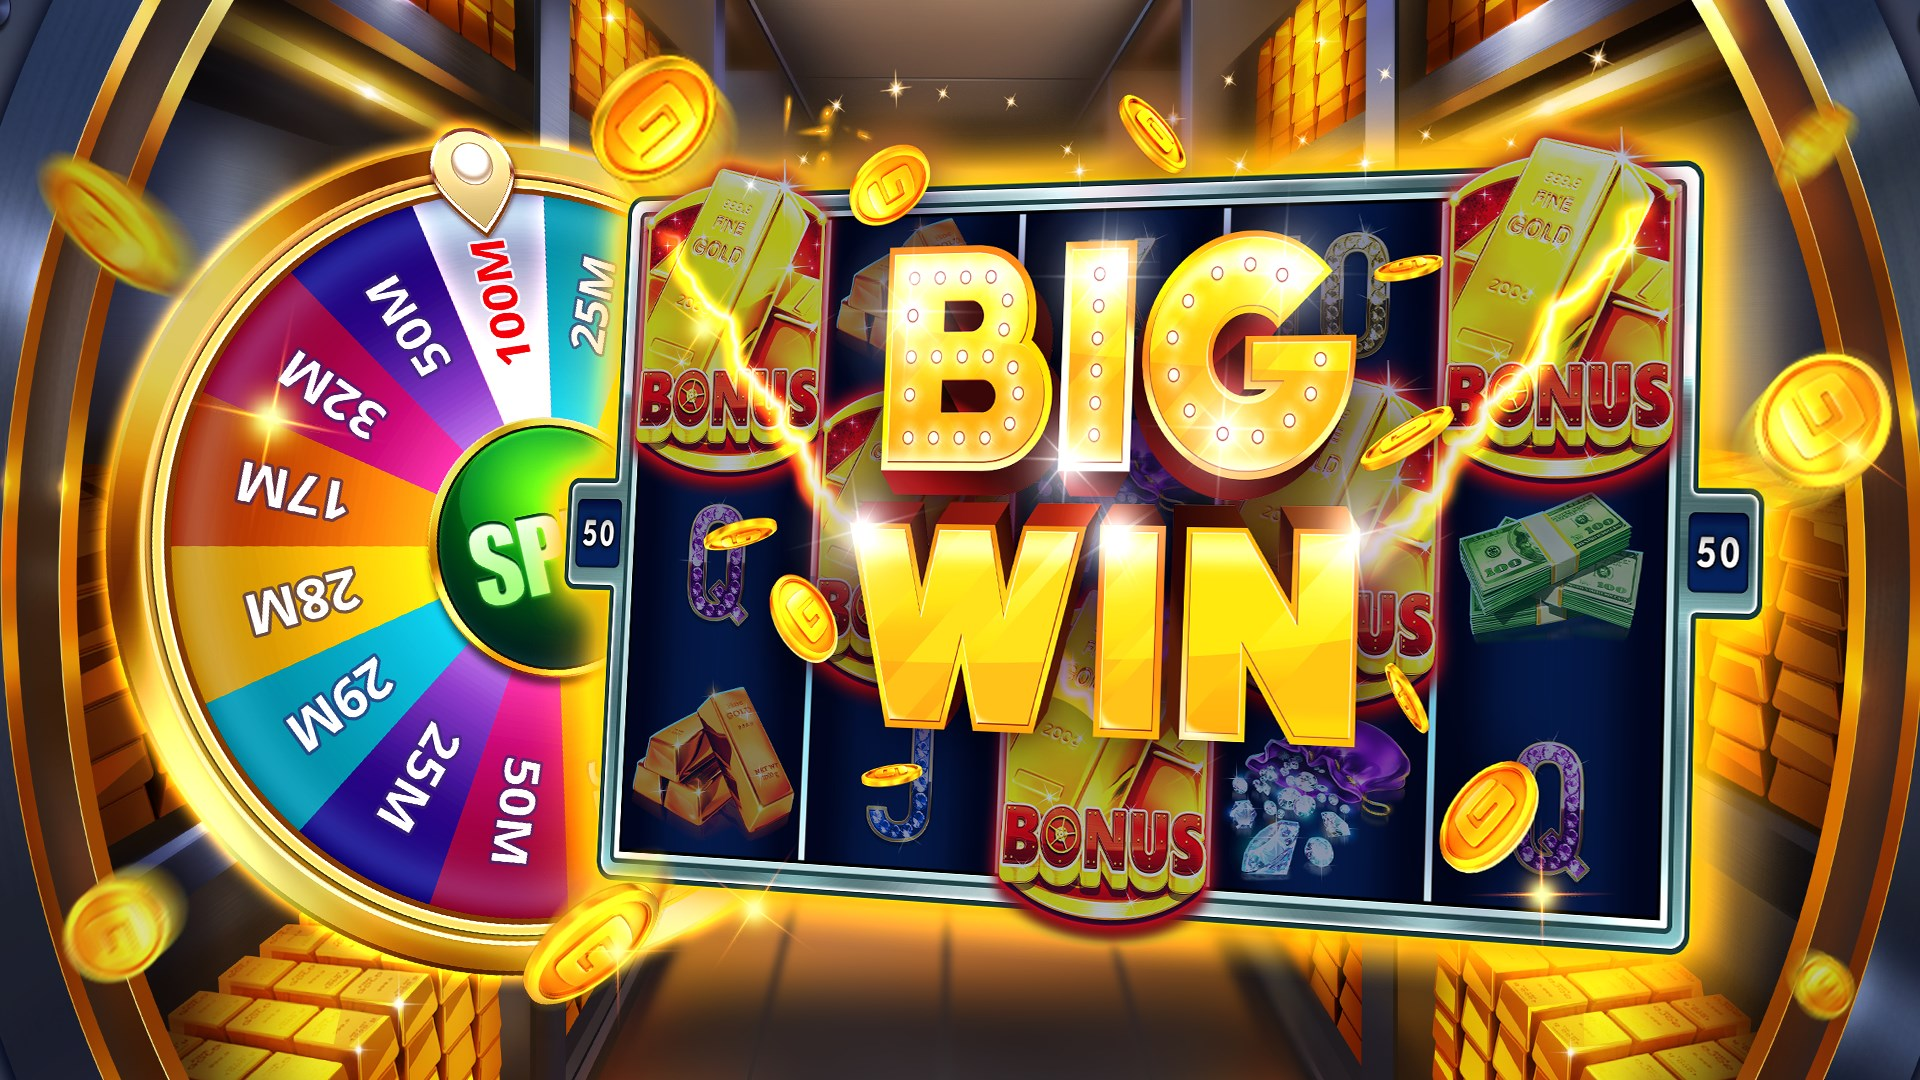 Best slot casino payouts